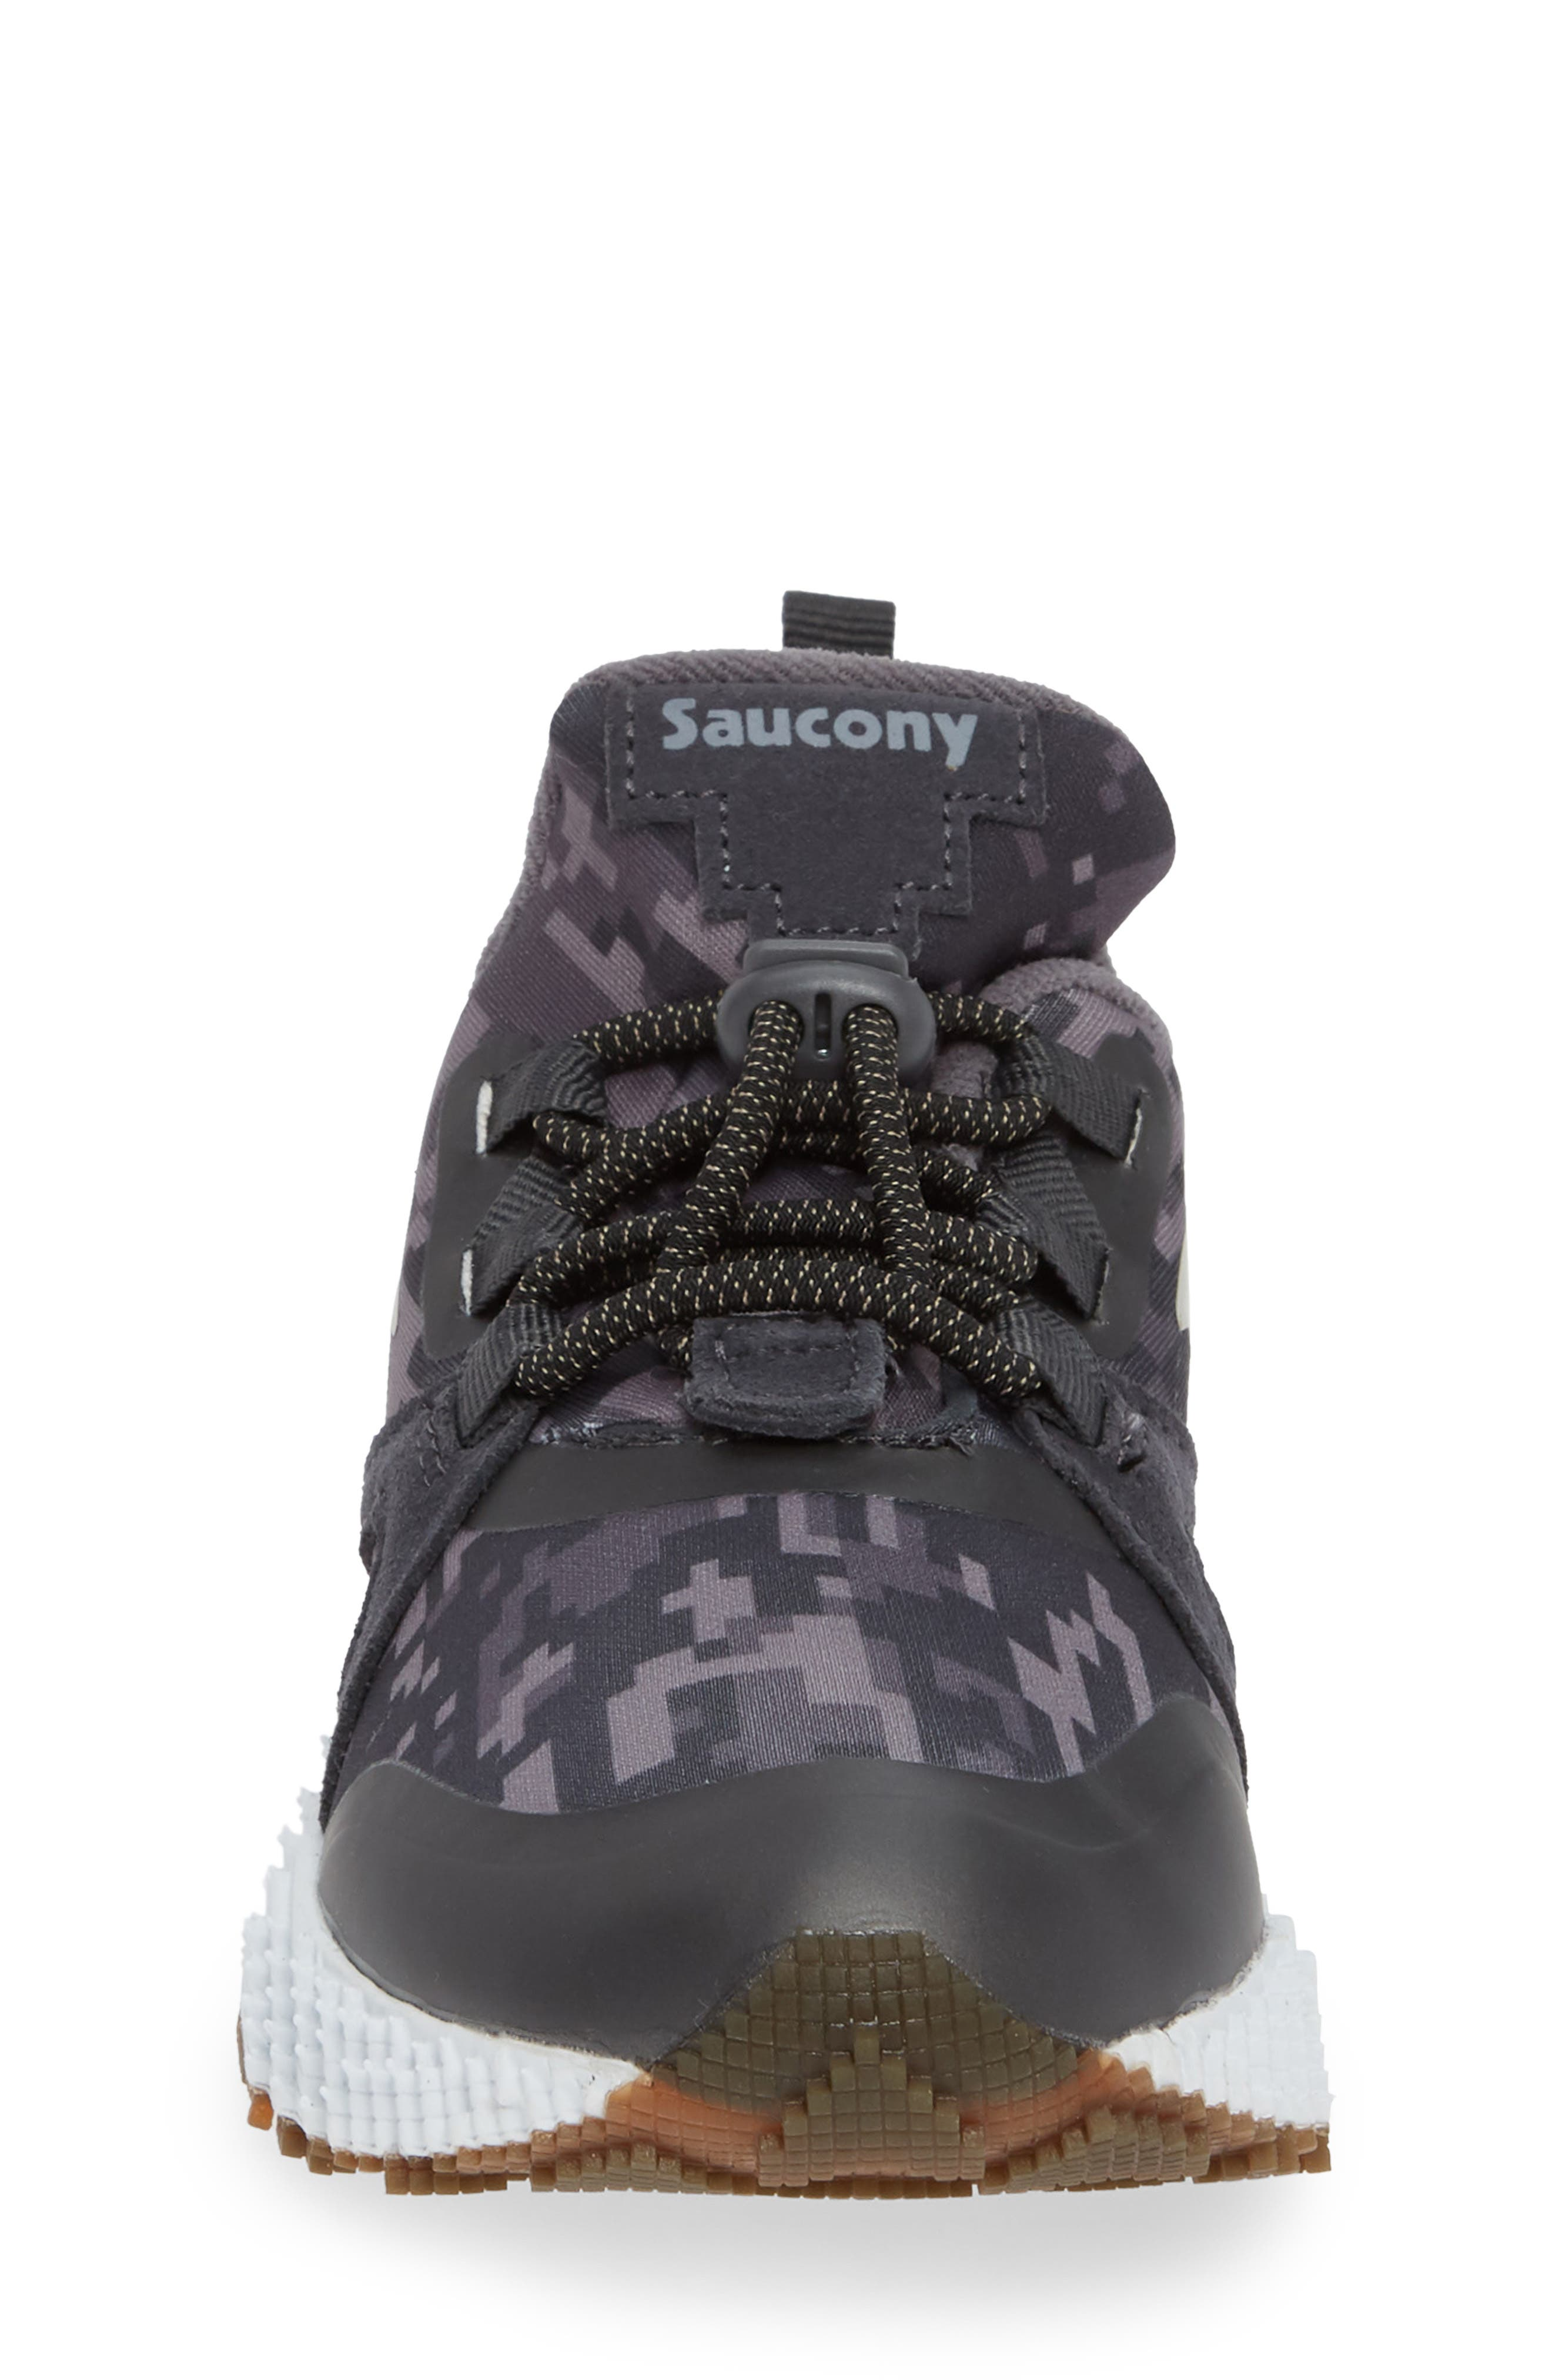 SAUCONY, Voxel 9000 Sneaker, Alternate thumbnail 4, color, GREY LEATHER/ MESH